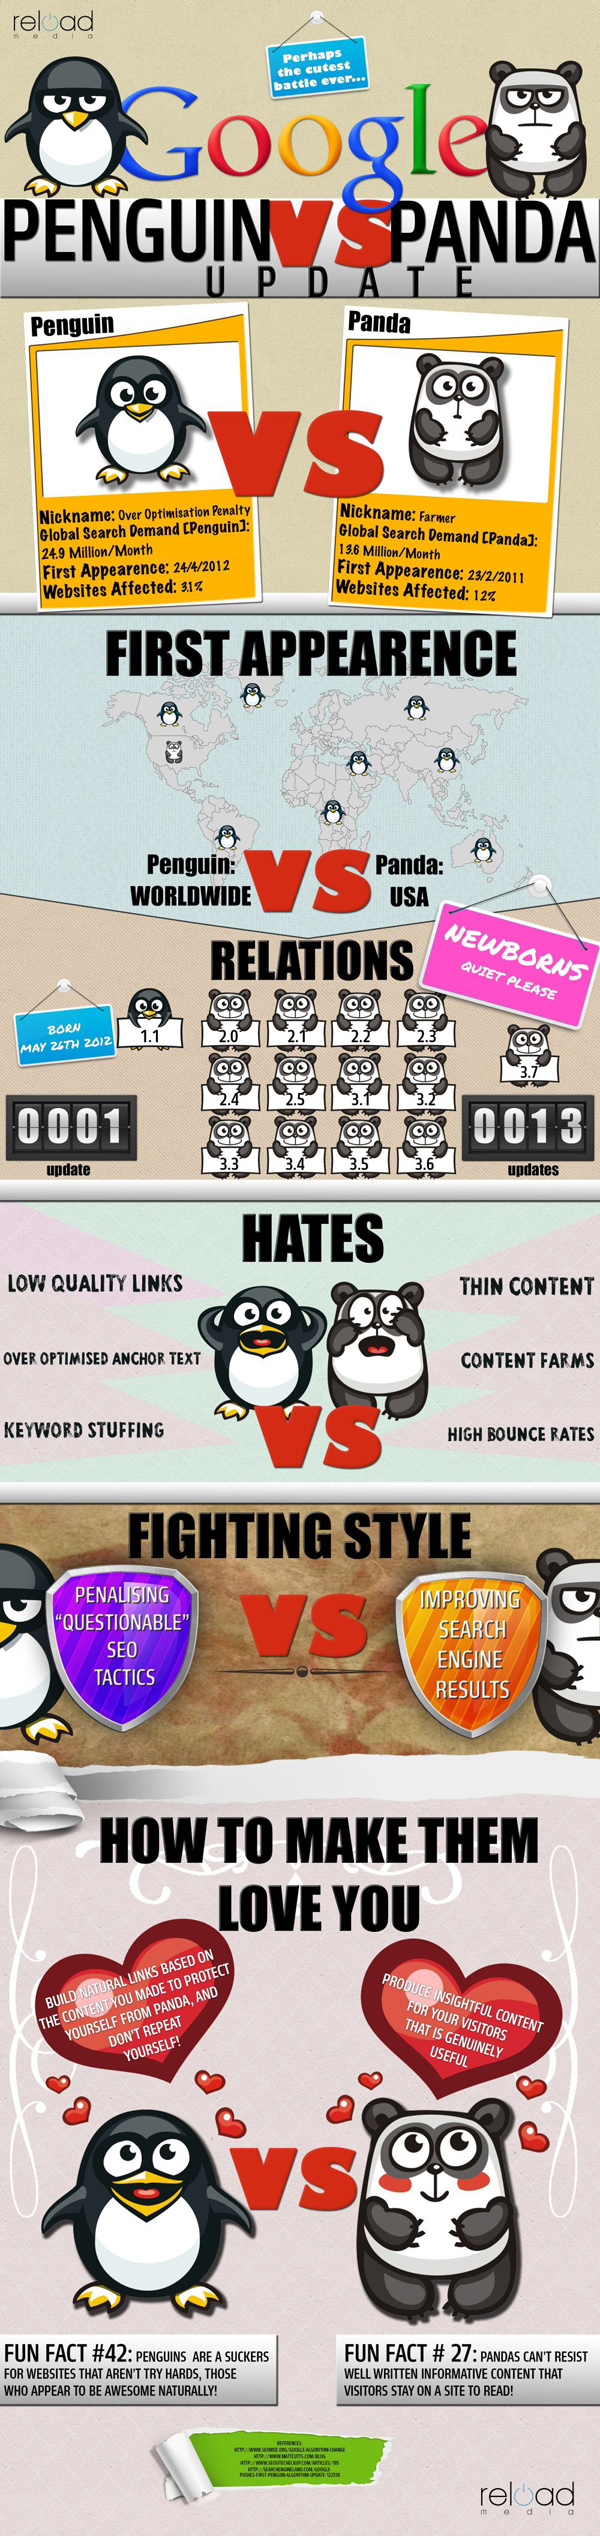 Google Penguin vs Panda update